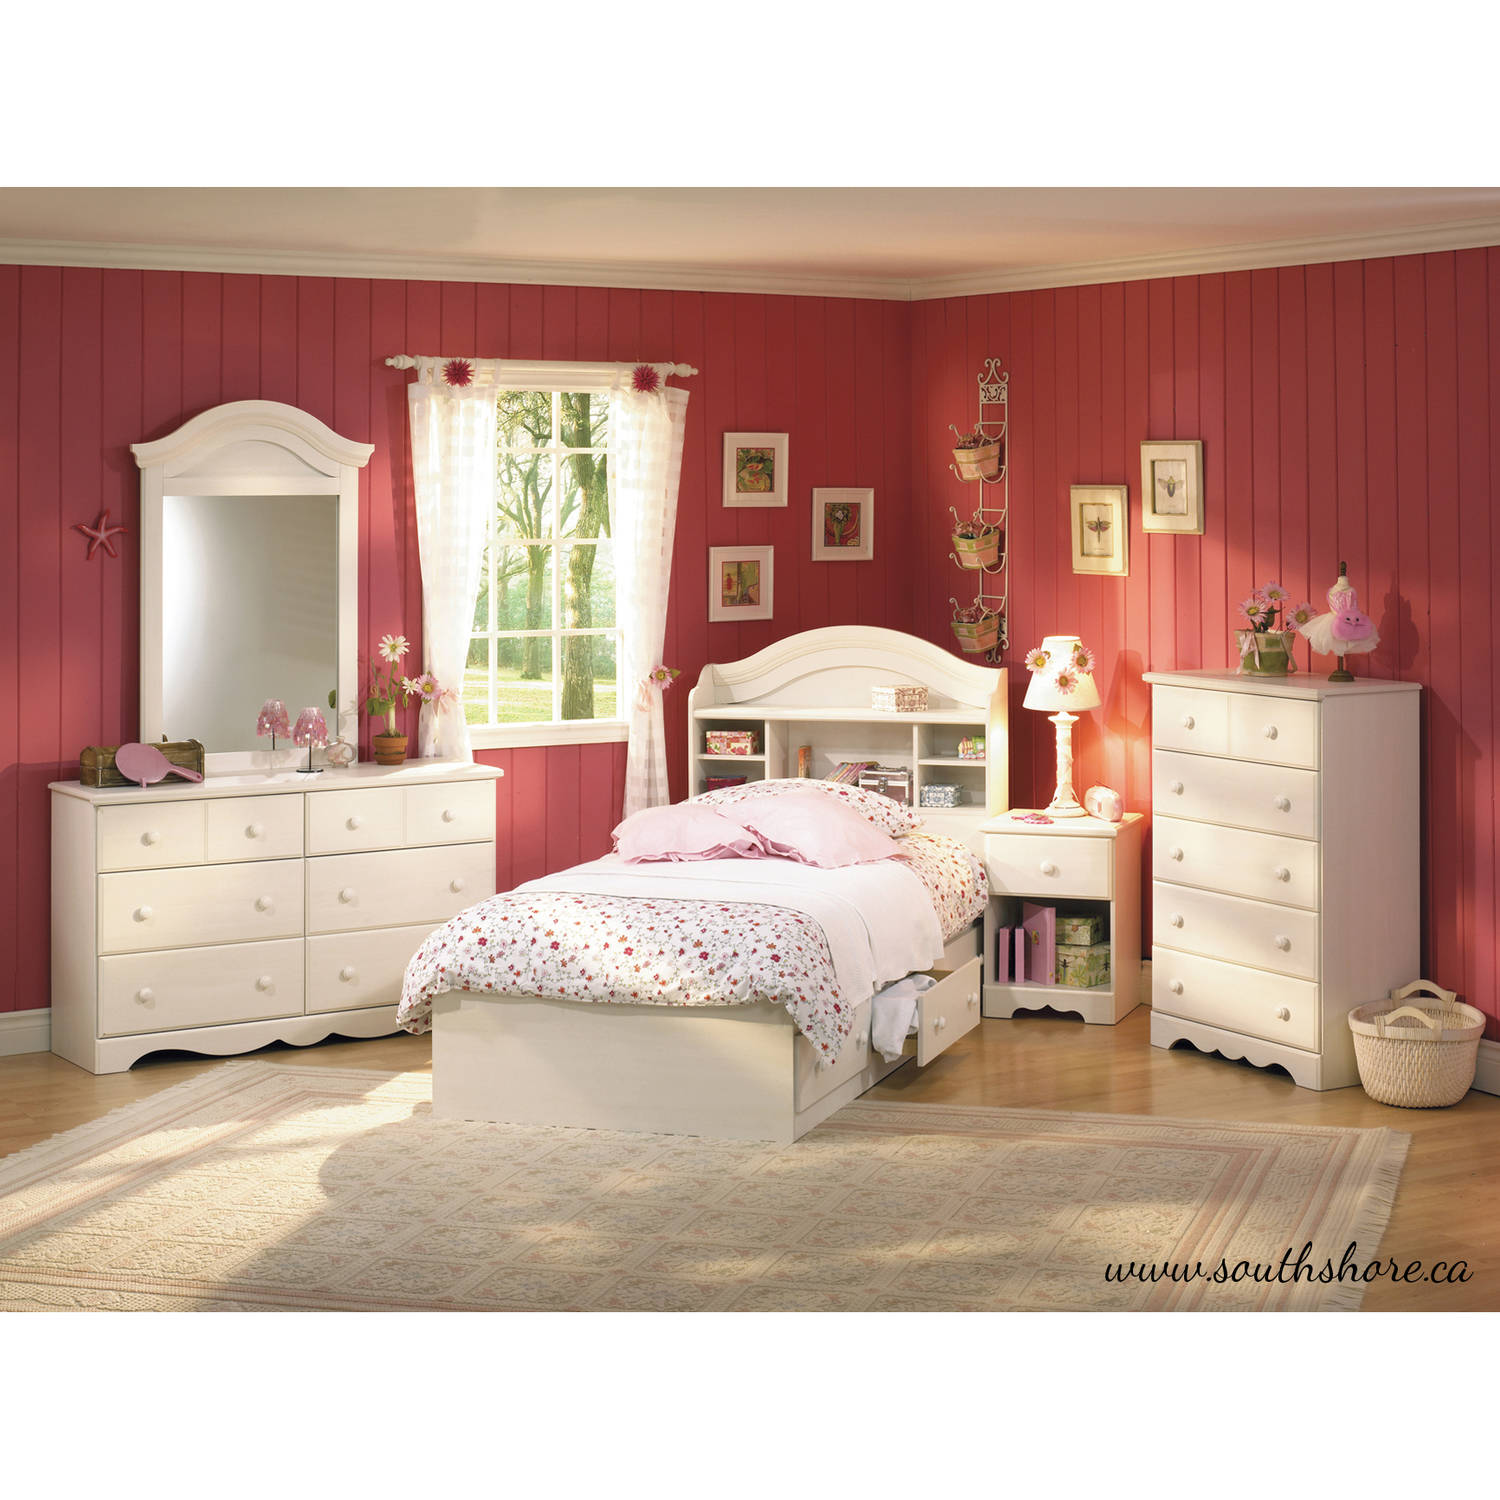 Bedroom furniture for girls rooms -  Ideas Grandiose Double Ikea Bed Loft South Shore Summer Breeze Twin Bookcase Headboard 39 Multiple